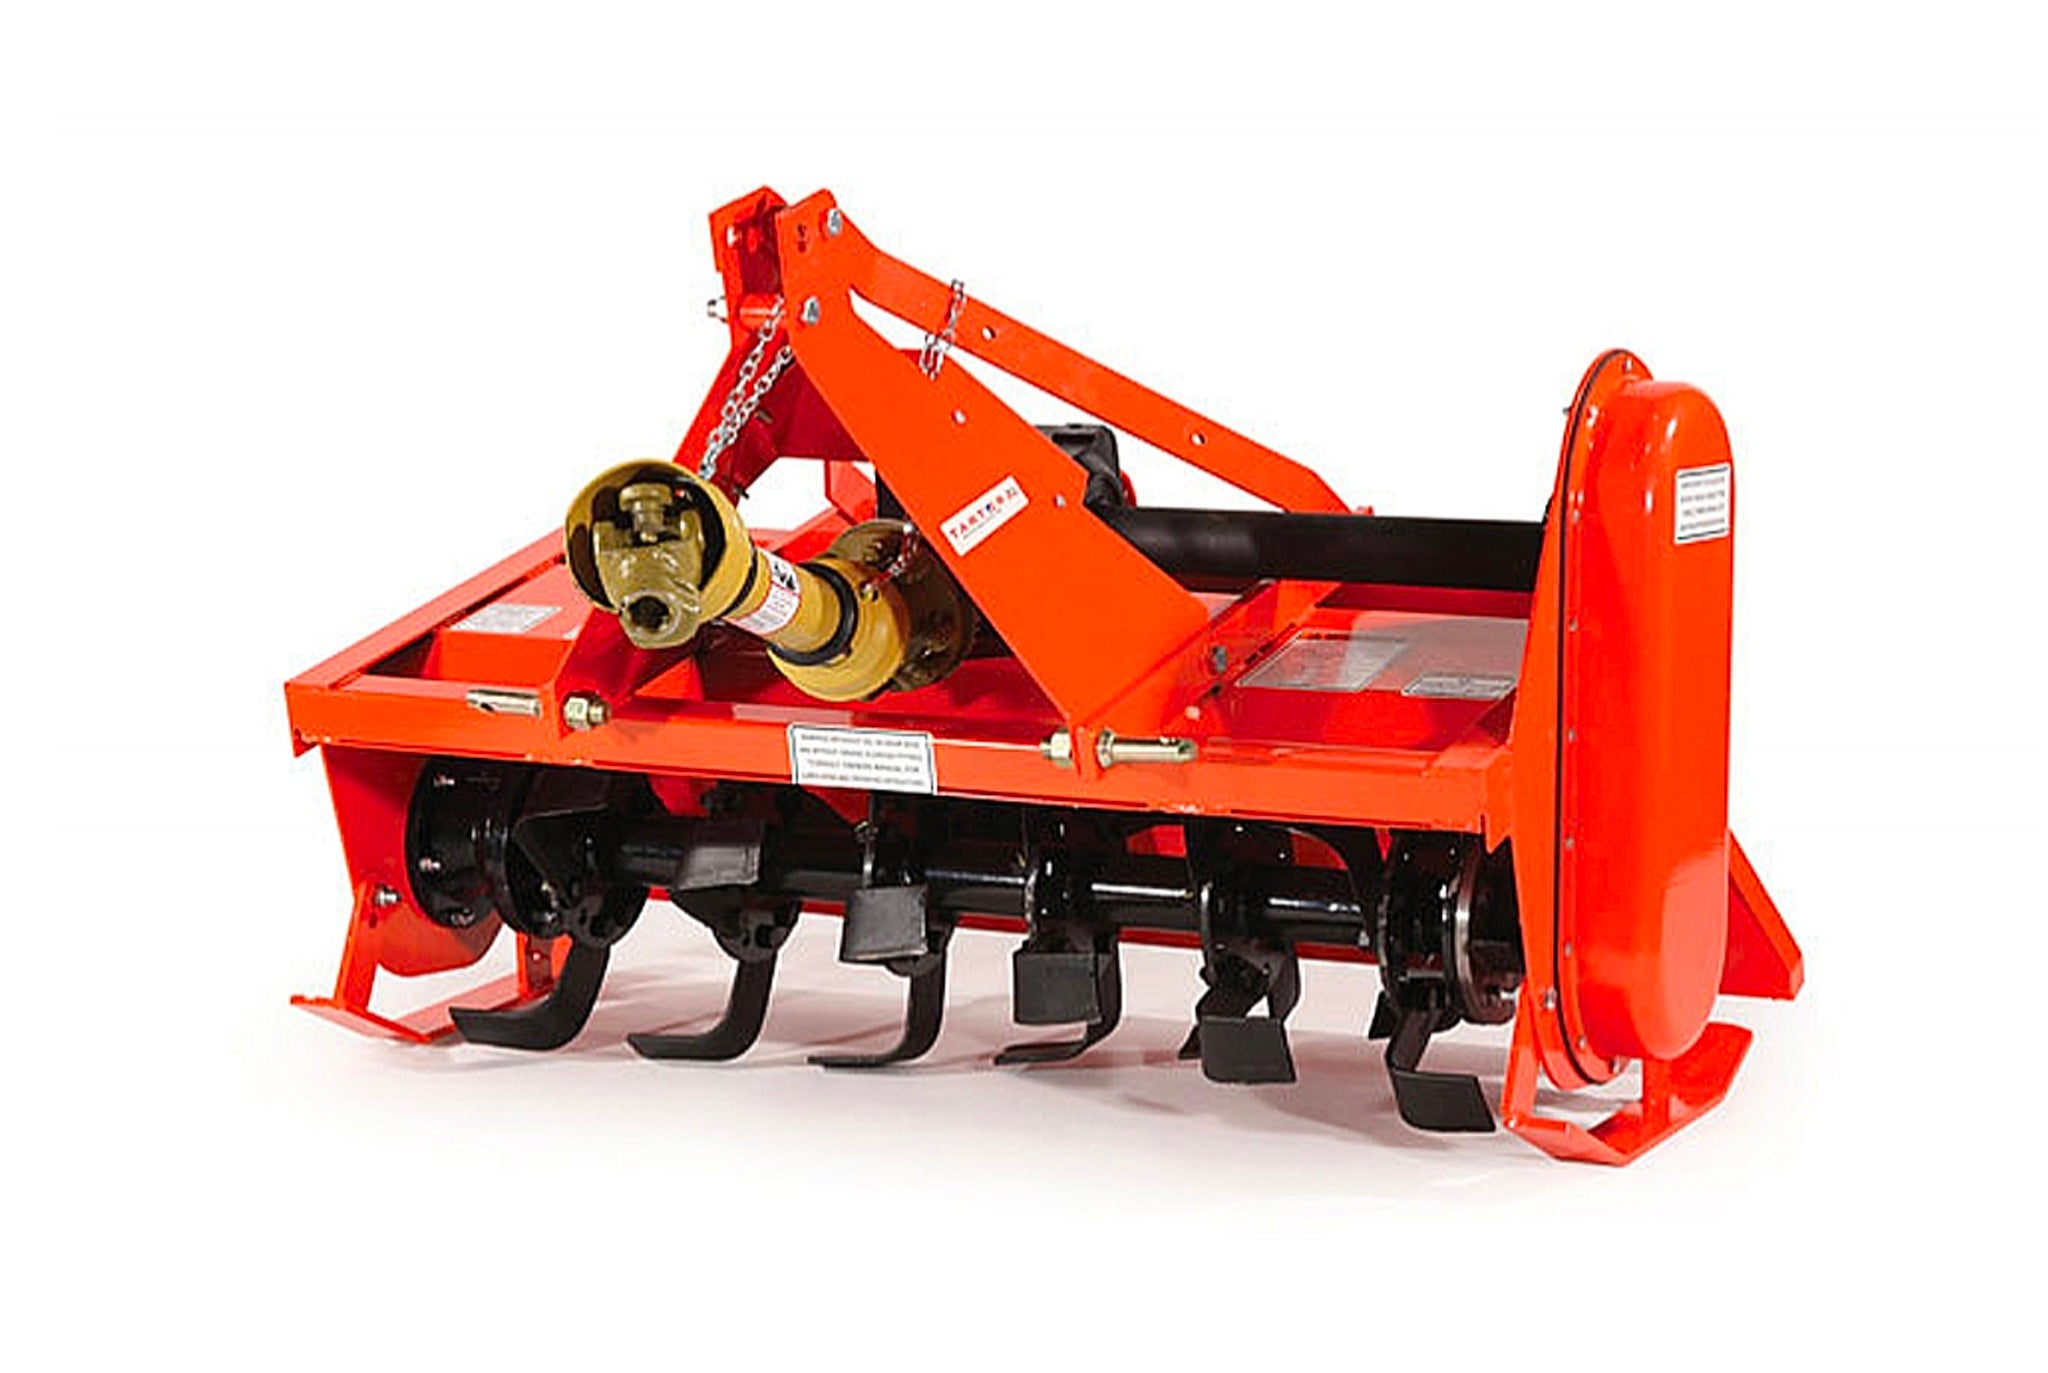 4' Rotary Tiller Sub-Compact